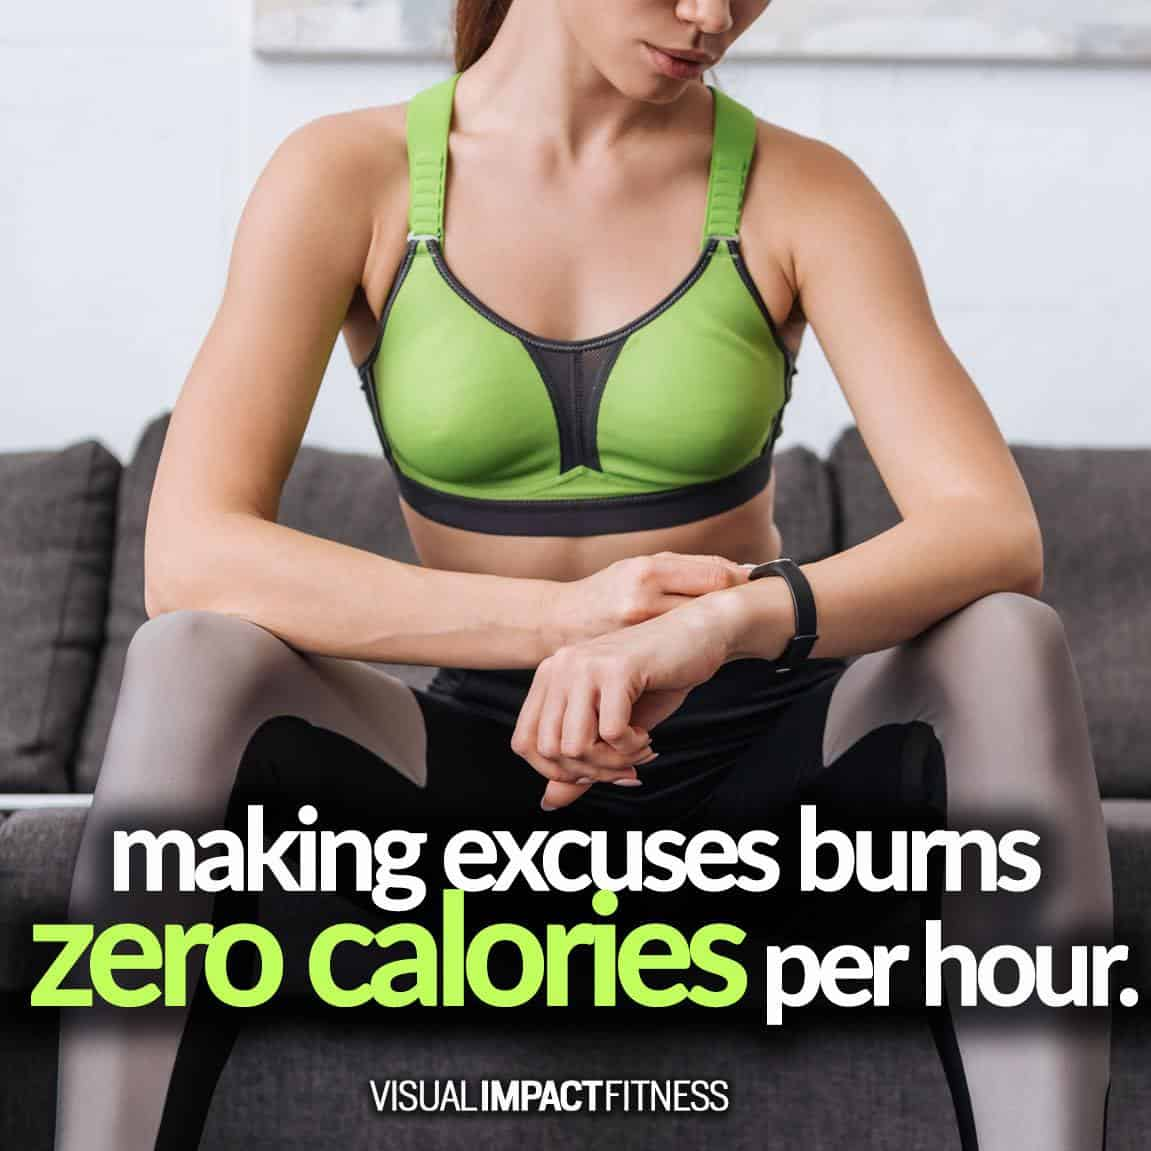 Making Excuses Burns Zero Calories Per Hour